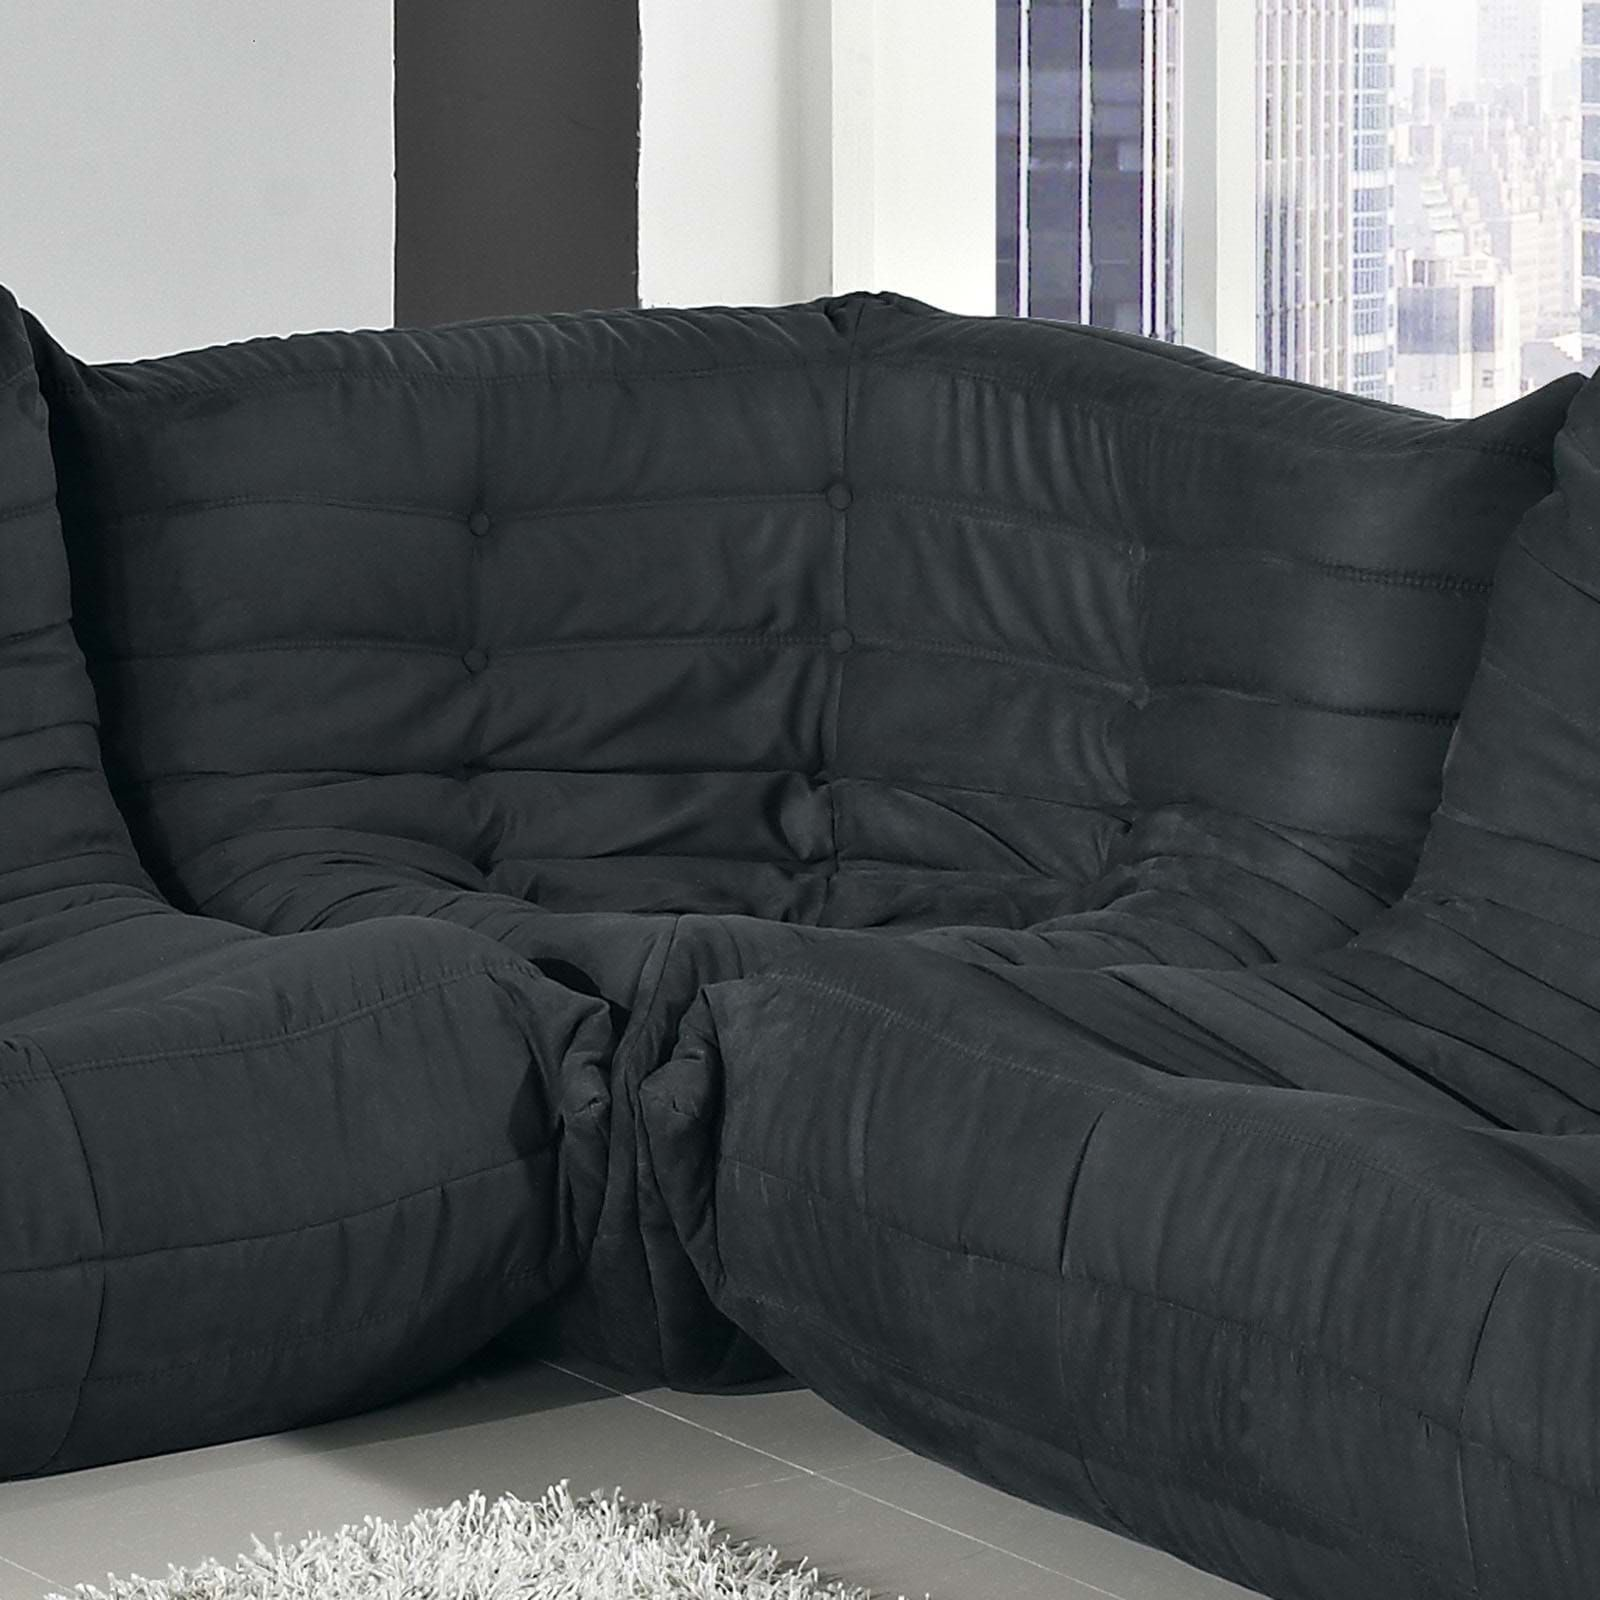 EEI 903 BLK 2 Black Provide natural fort at every